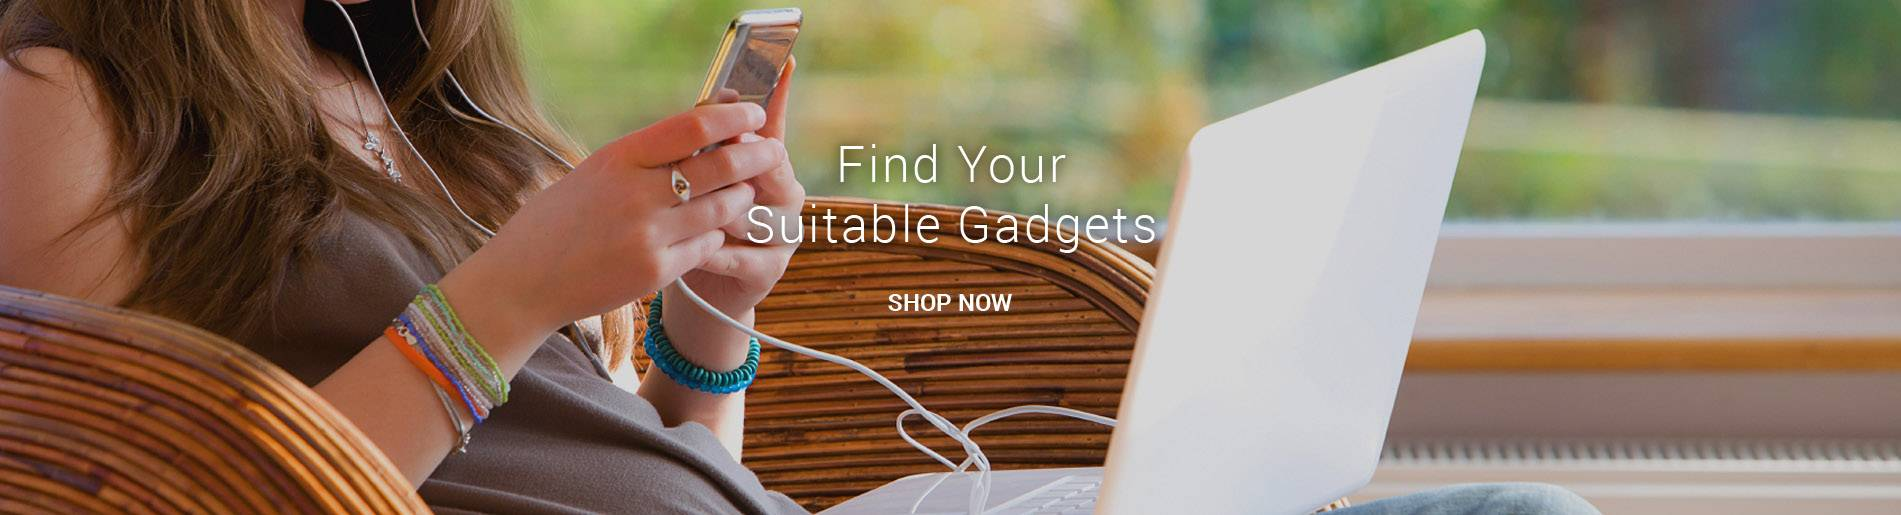 Find Your Suitable Gadgets